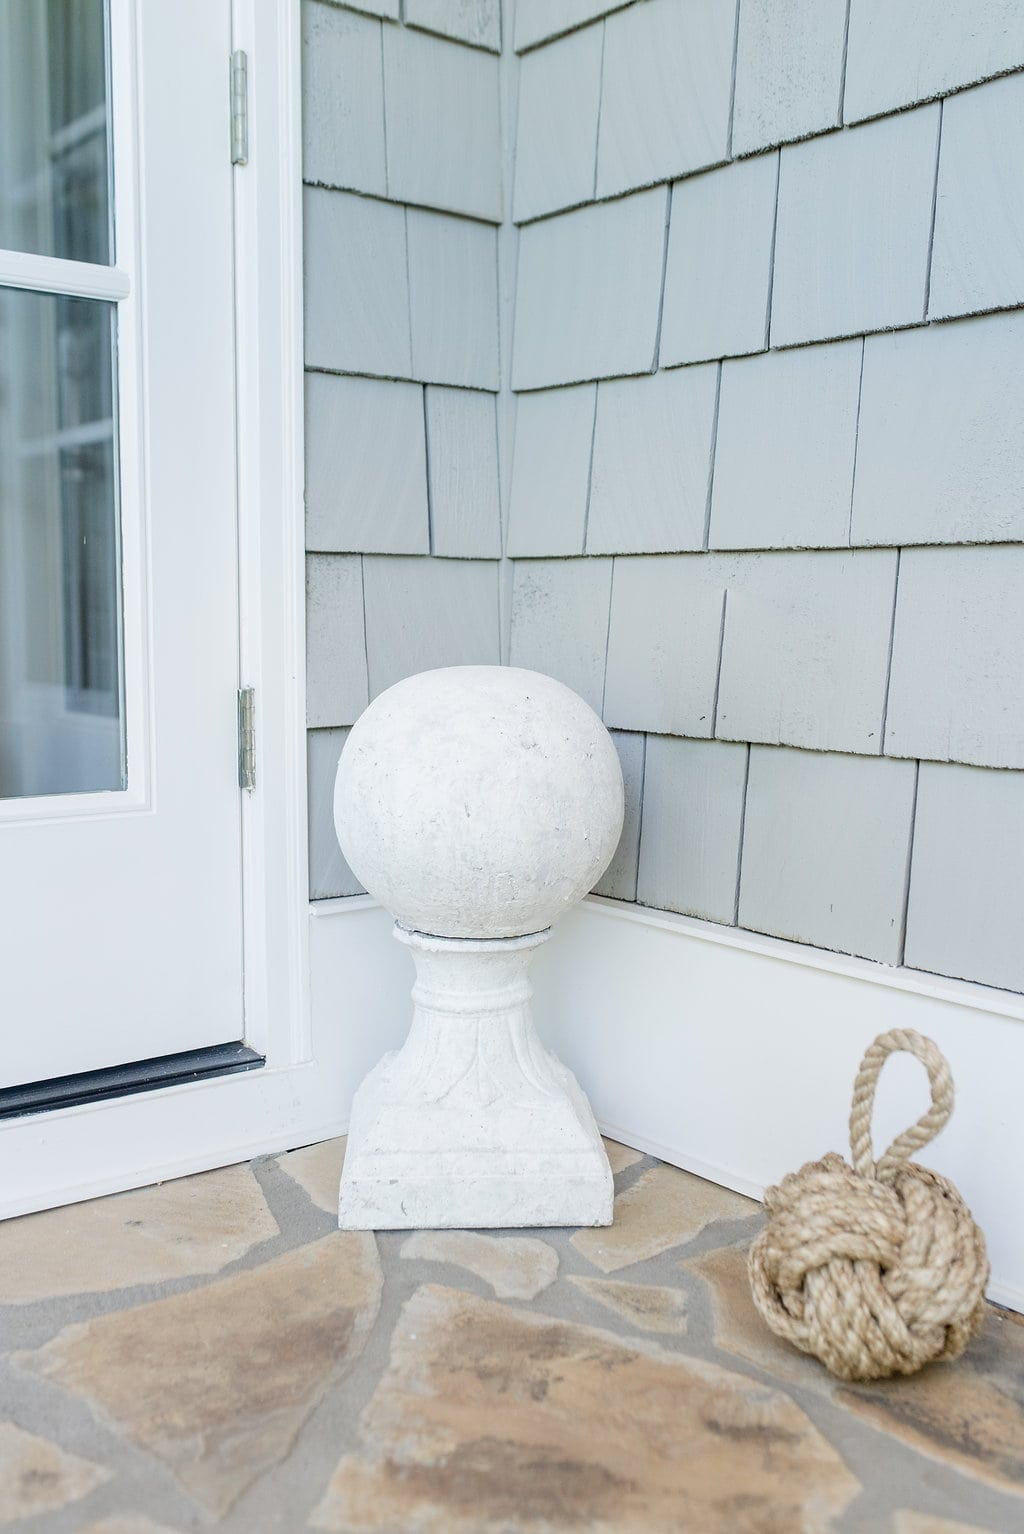 Knot door stopper and white ceramic finial.